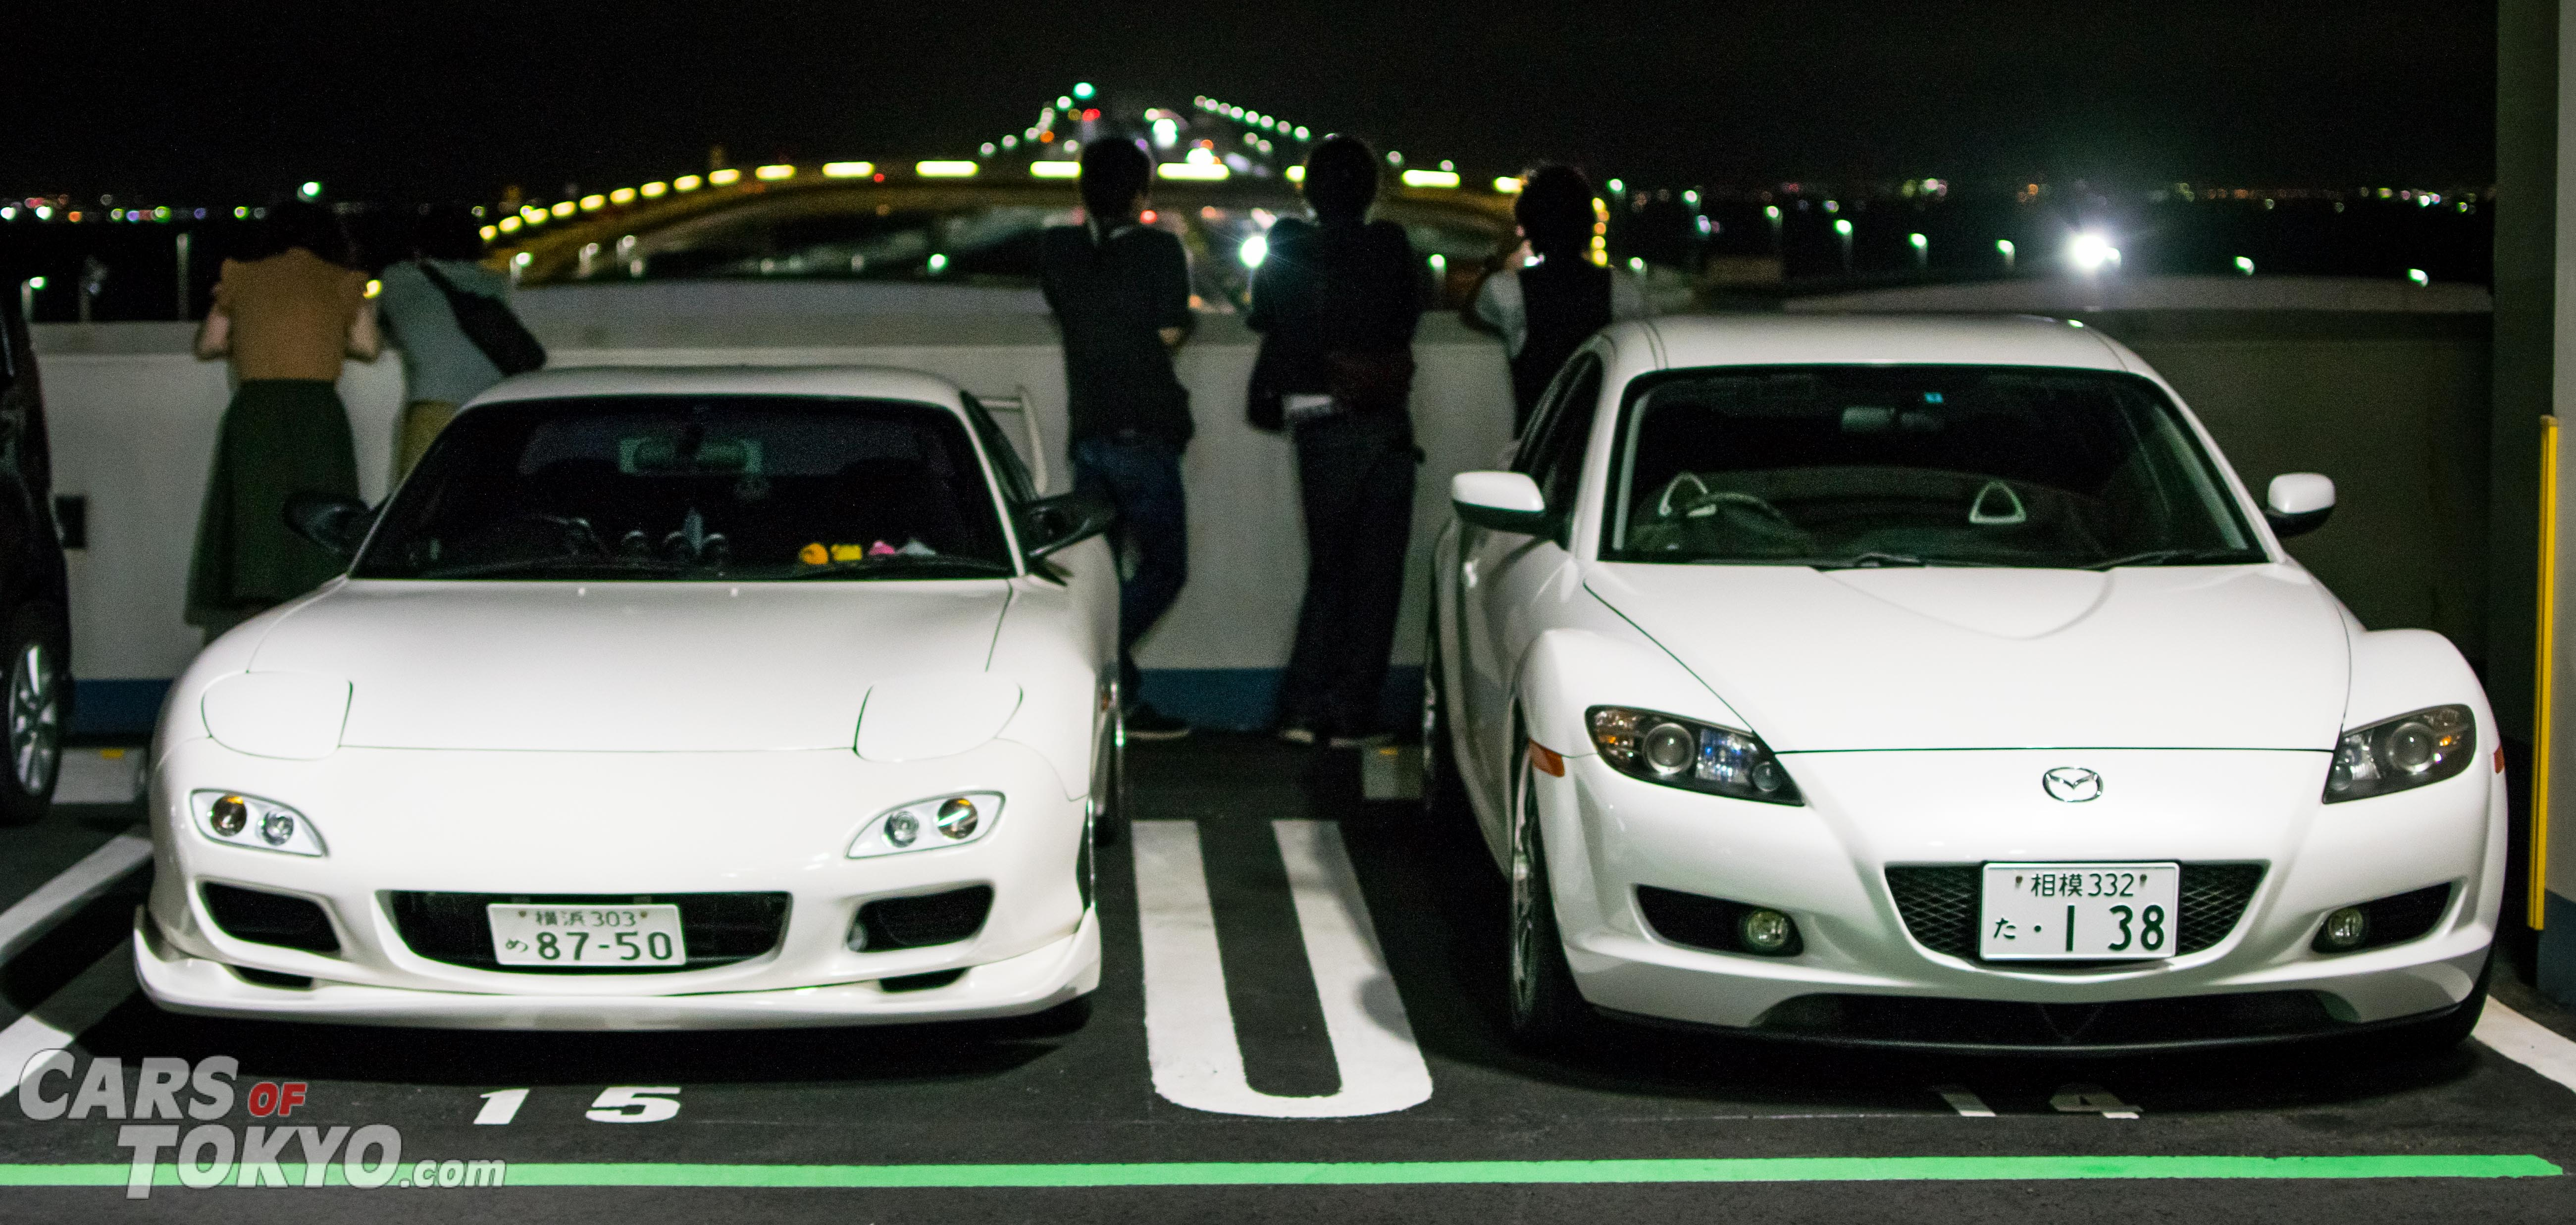 Cars of Tokyo Mazda RX7 RX8